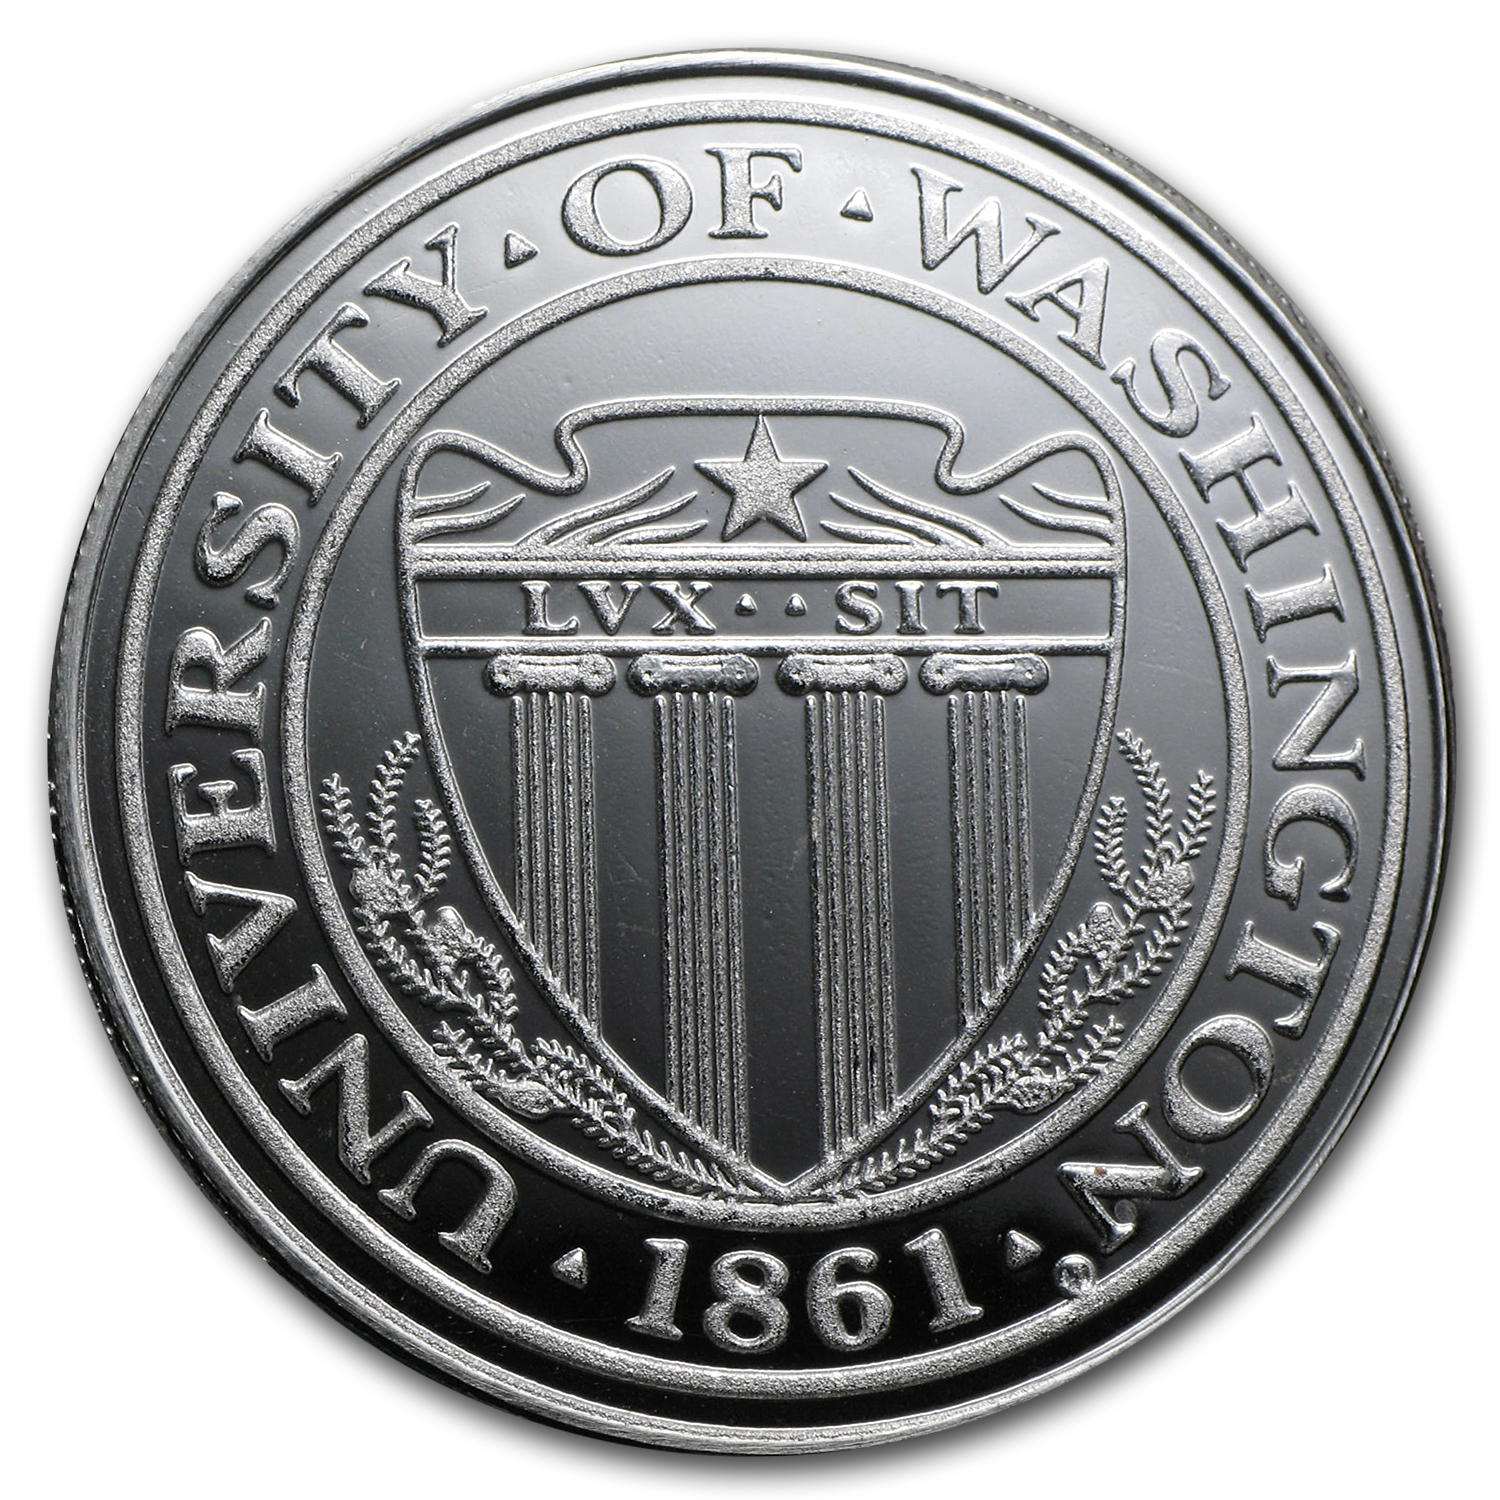 1 oz Silver Round - University of Washington